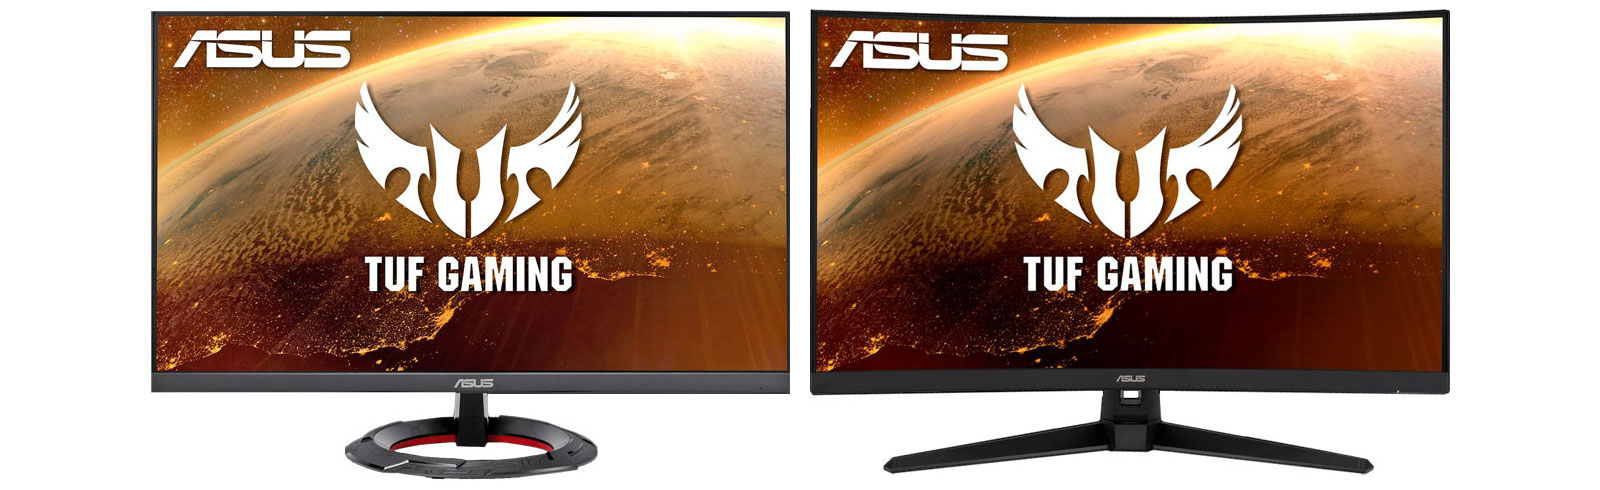 Asus TUF Gaming VG249Q1R and VG32VQ1B are the latest additions to Asus' gaming monitors lineup